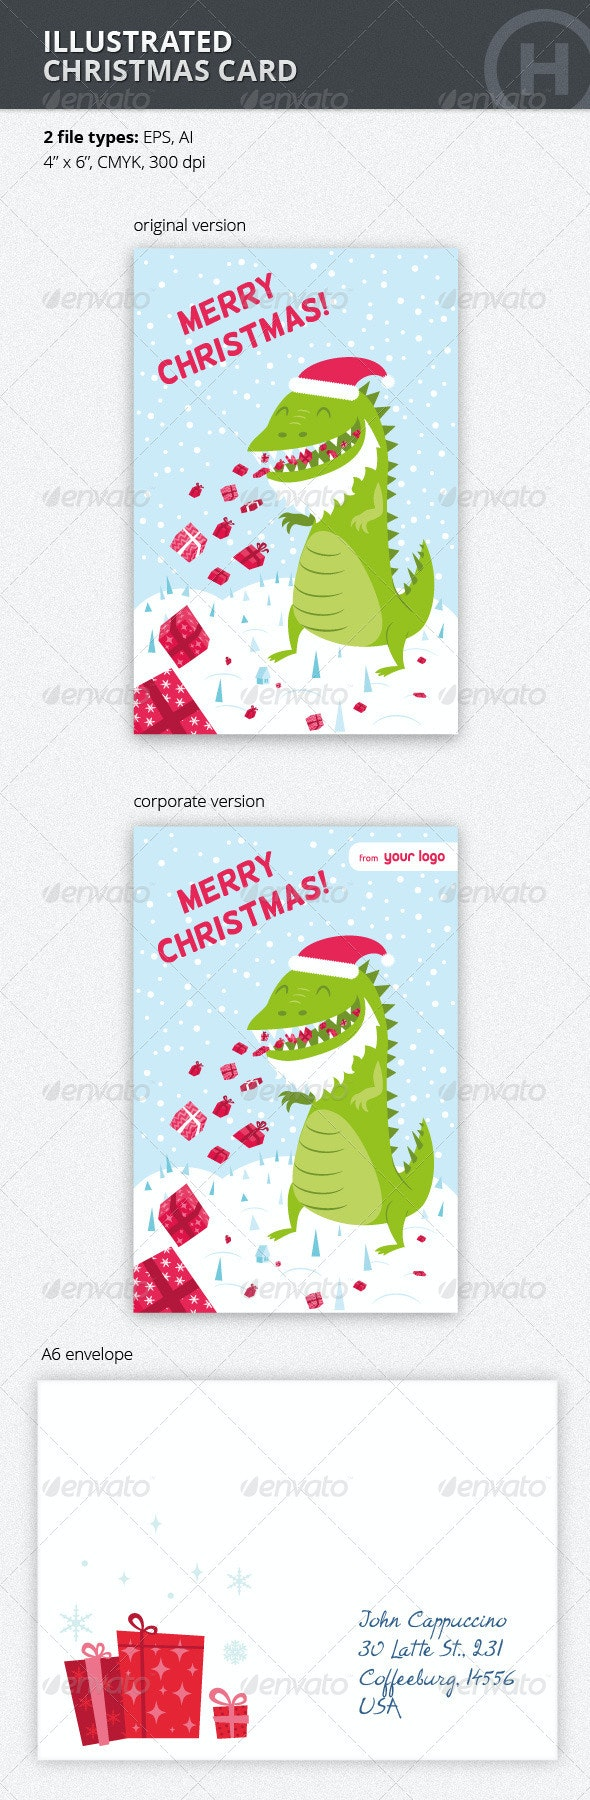 Illustrated Christmas Card with Godzilla - Holiday Greeting Cards